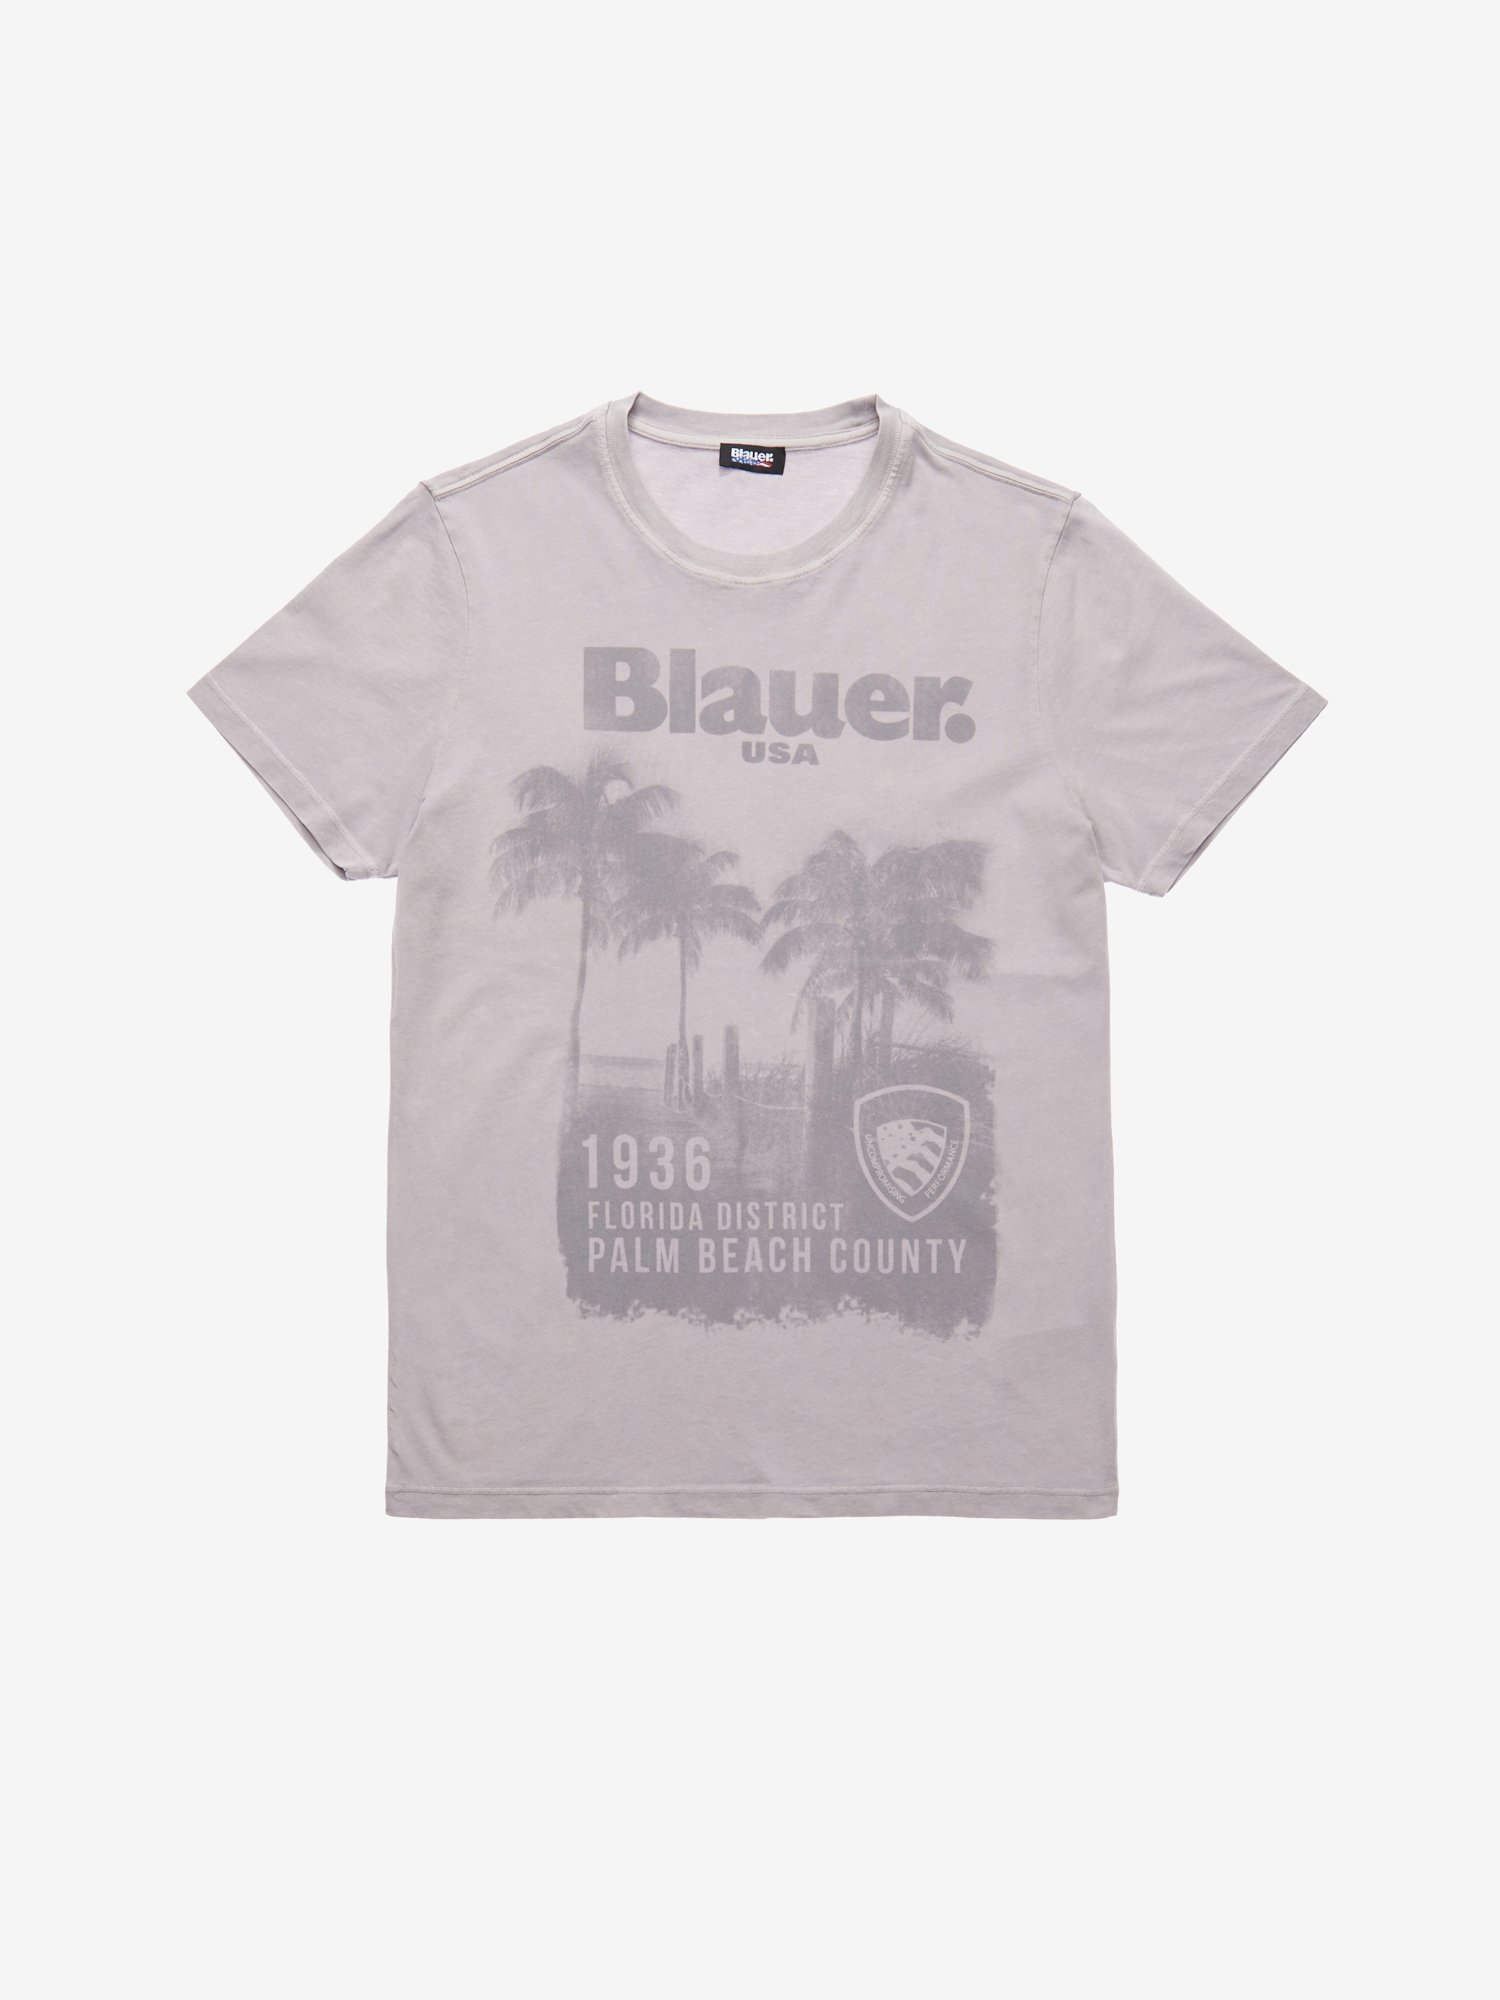 PALM BEACH COUNTY T-SHIRT - Blauer